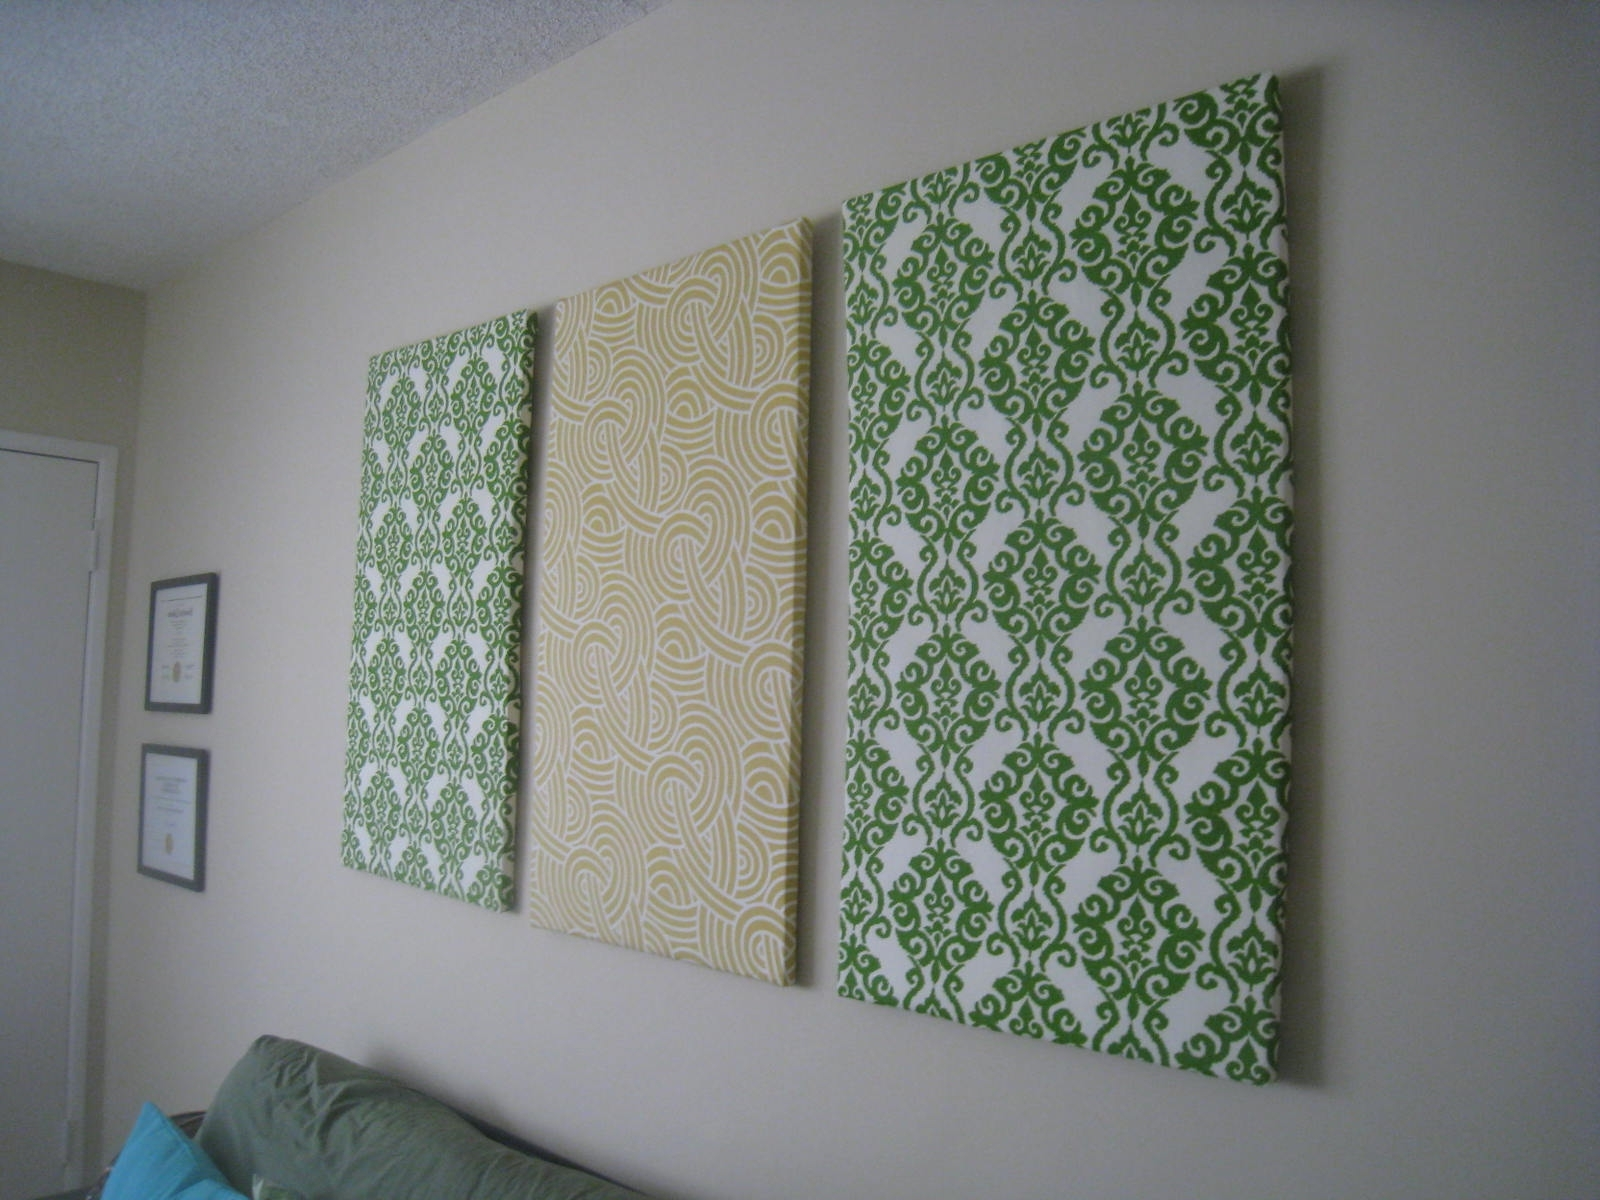 Current Large Fabric Wall Art For Art: Fabric Wall Art Diy (View 4 of 15)